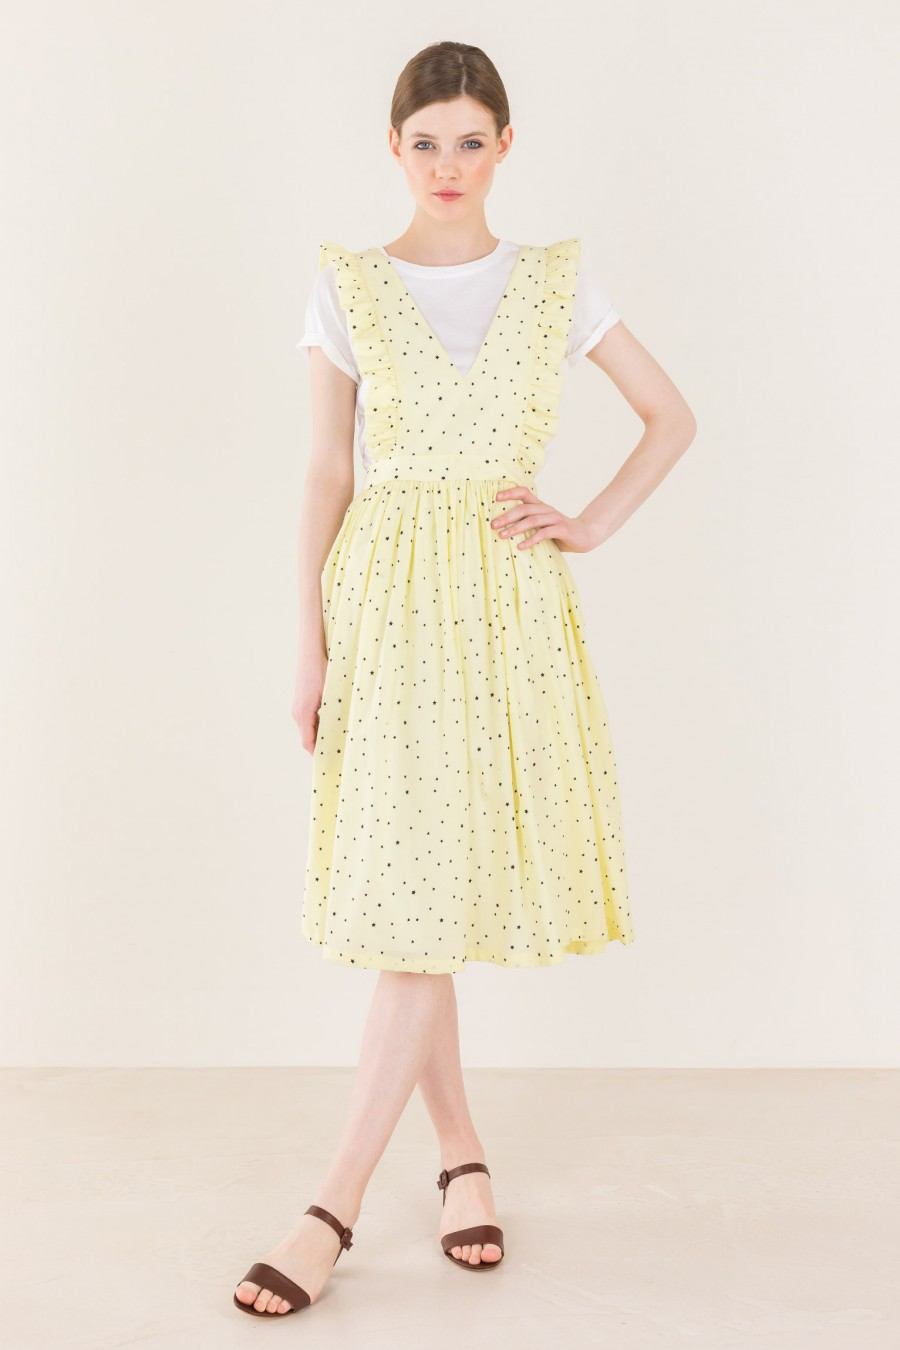 Dungarees dress with stars